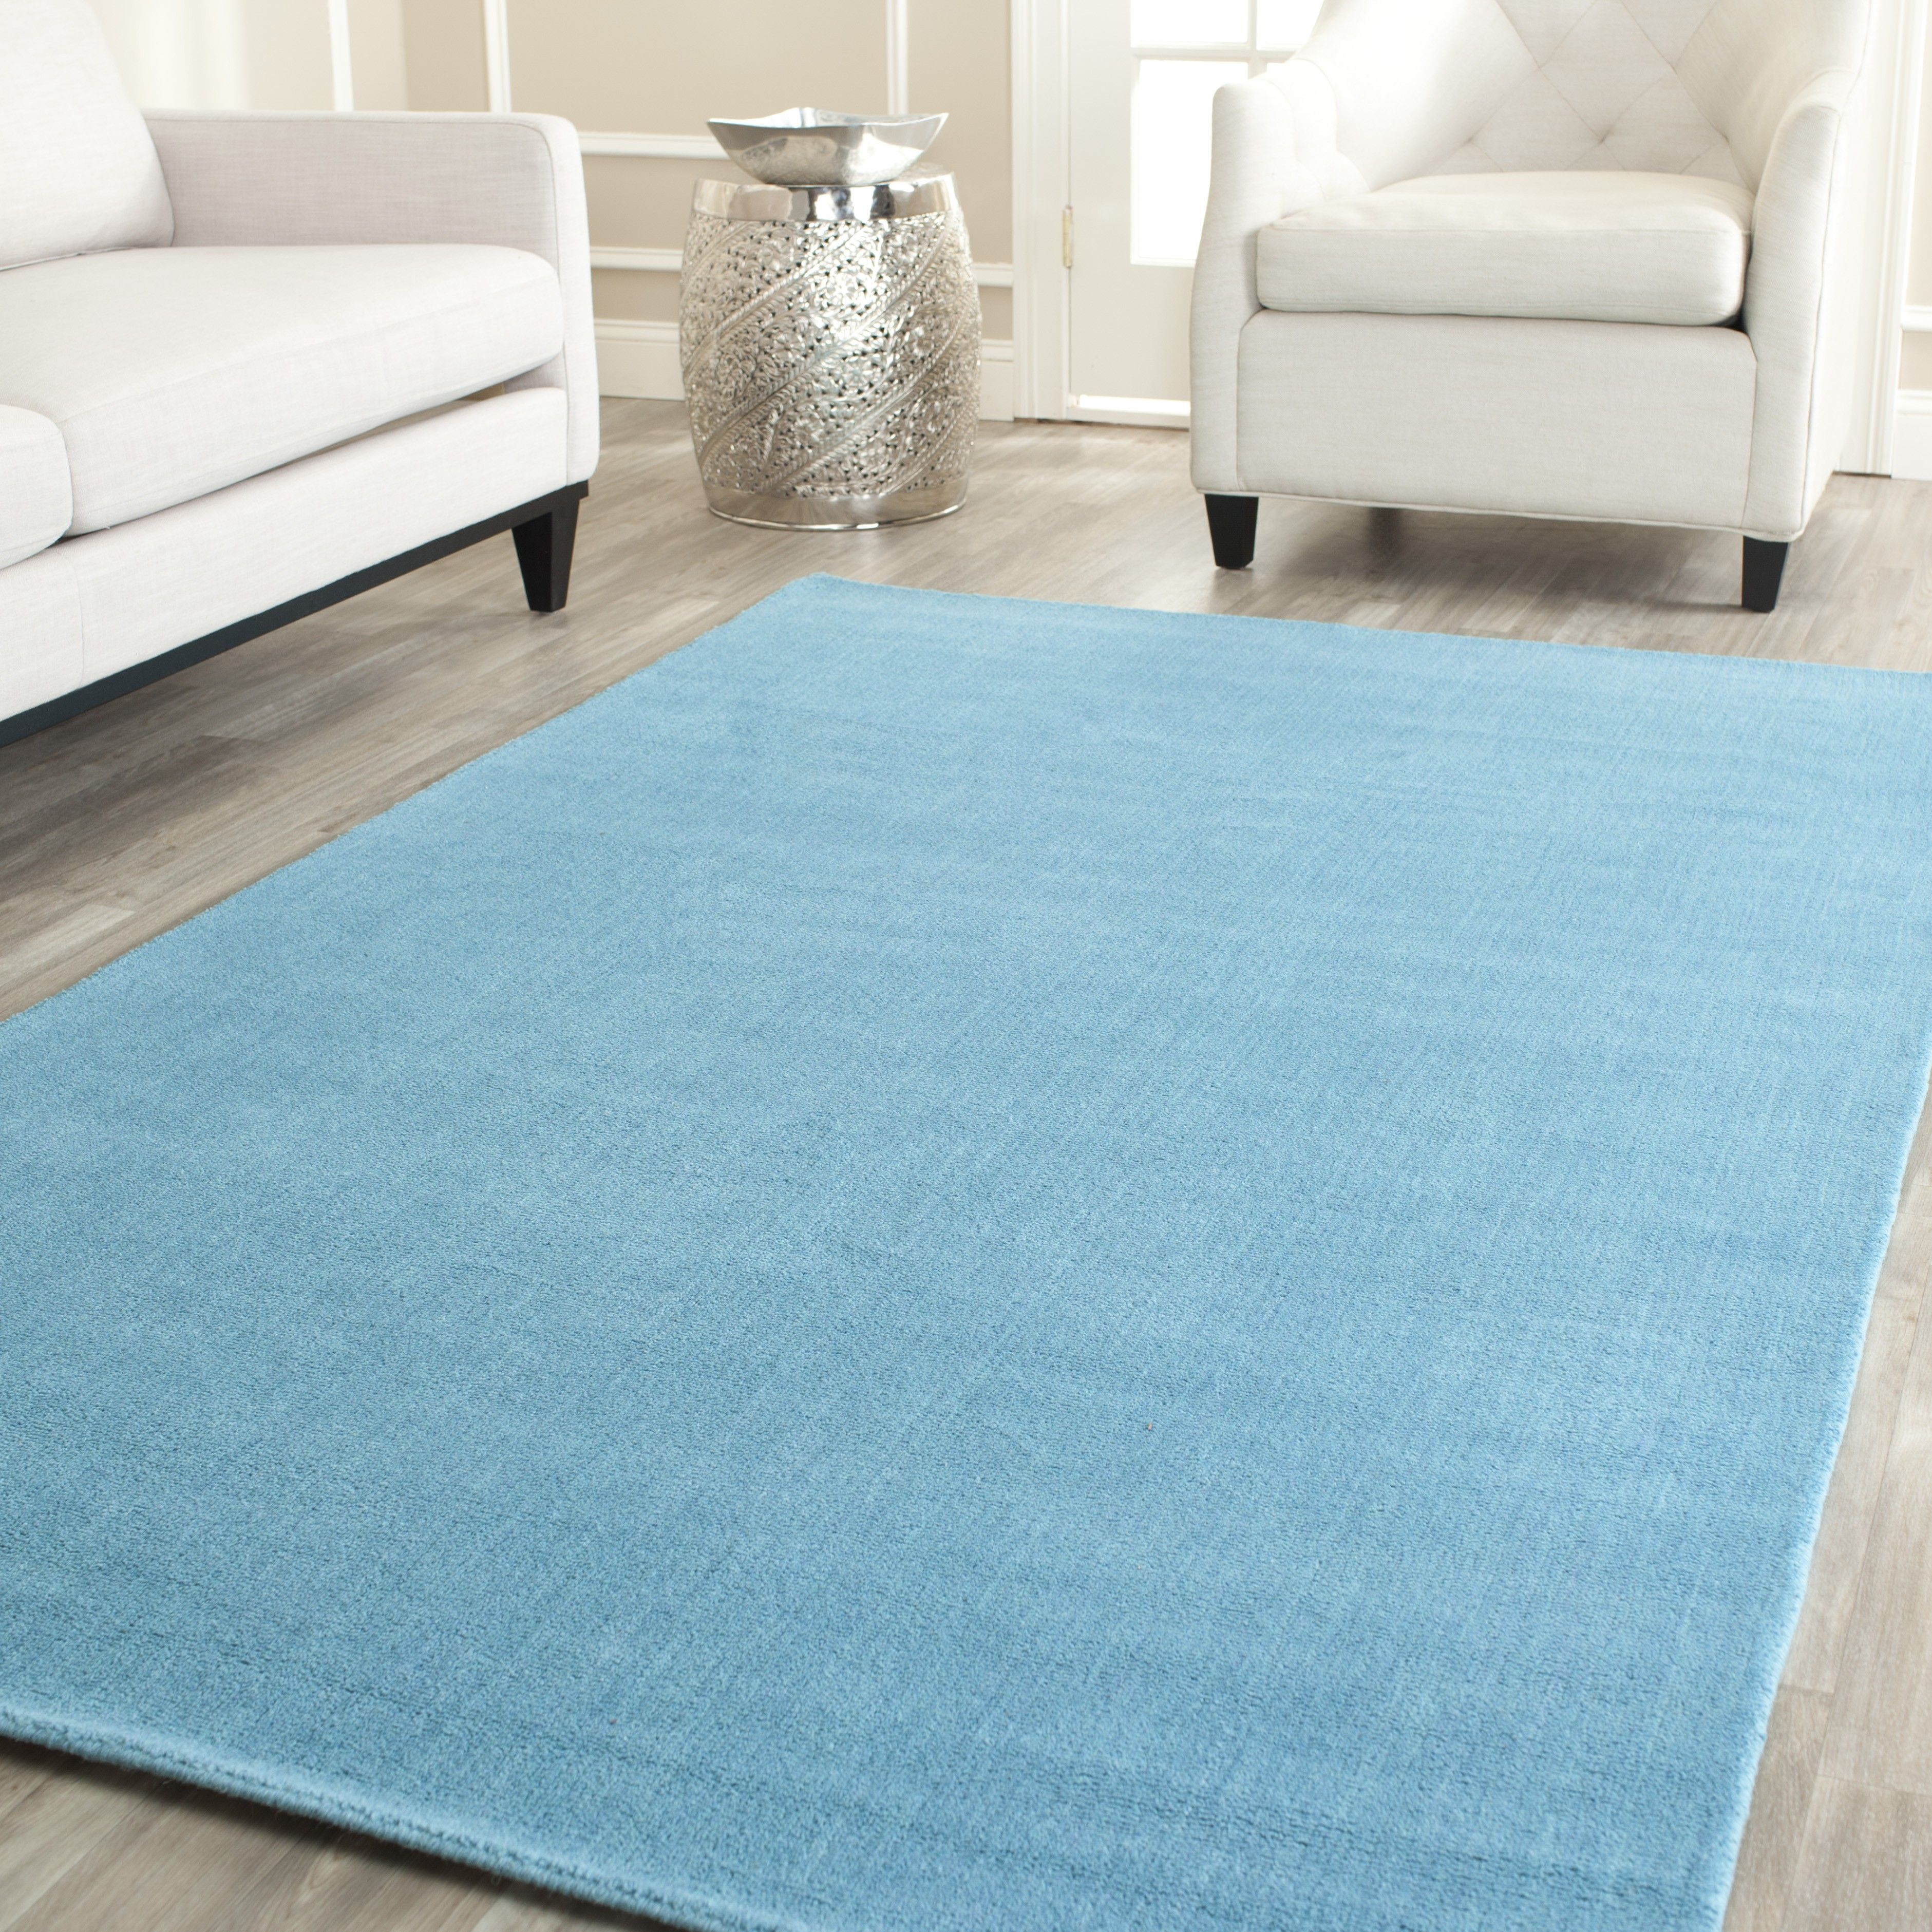 Area Rugs Walmart area rugs walmart above is part of the best post ...